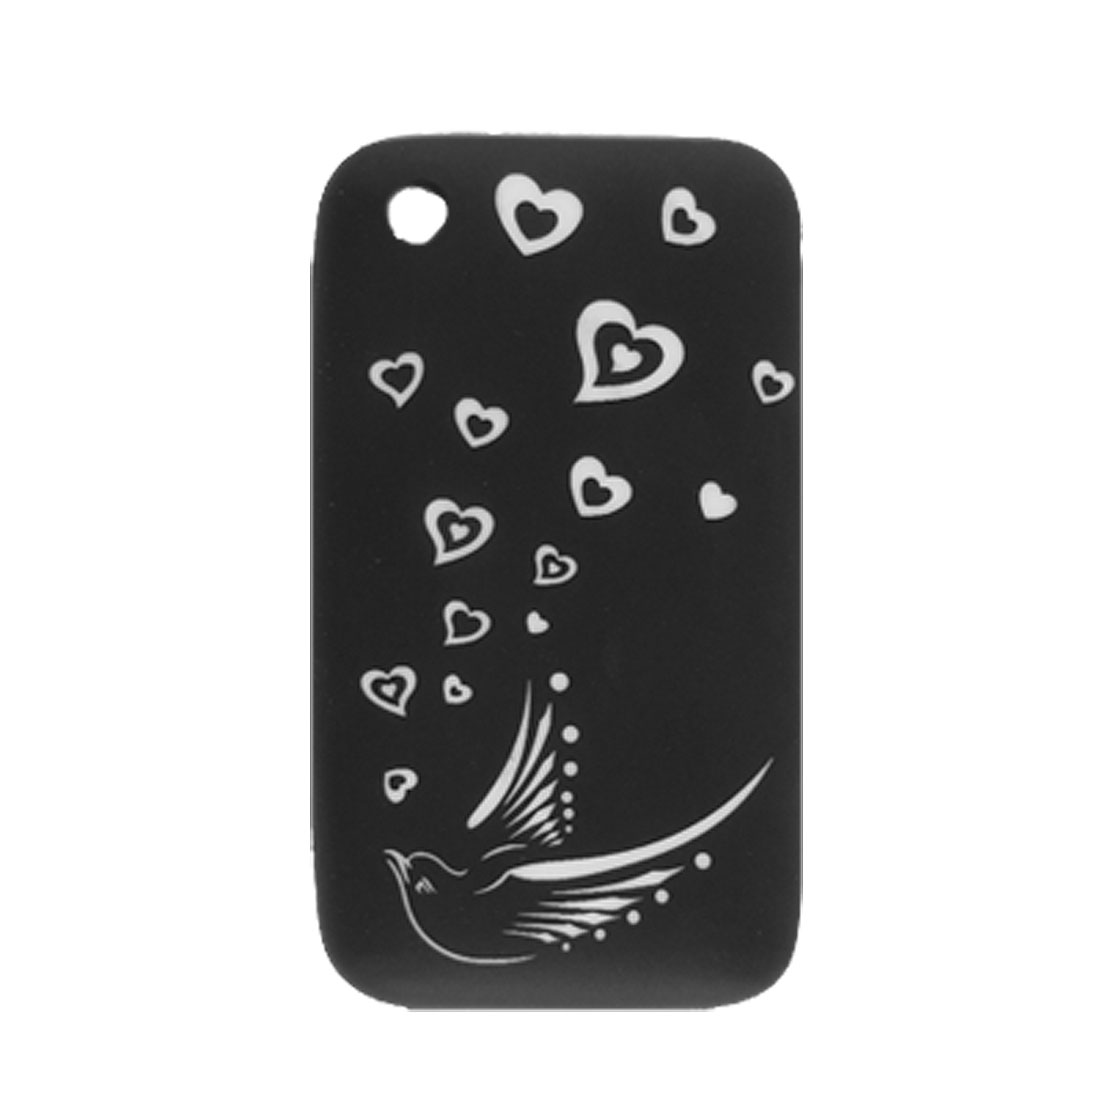 White Heart Pattern Silicone Skin Cover for iPhone 3G Black